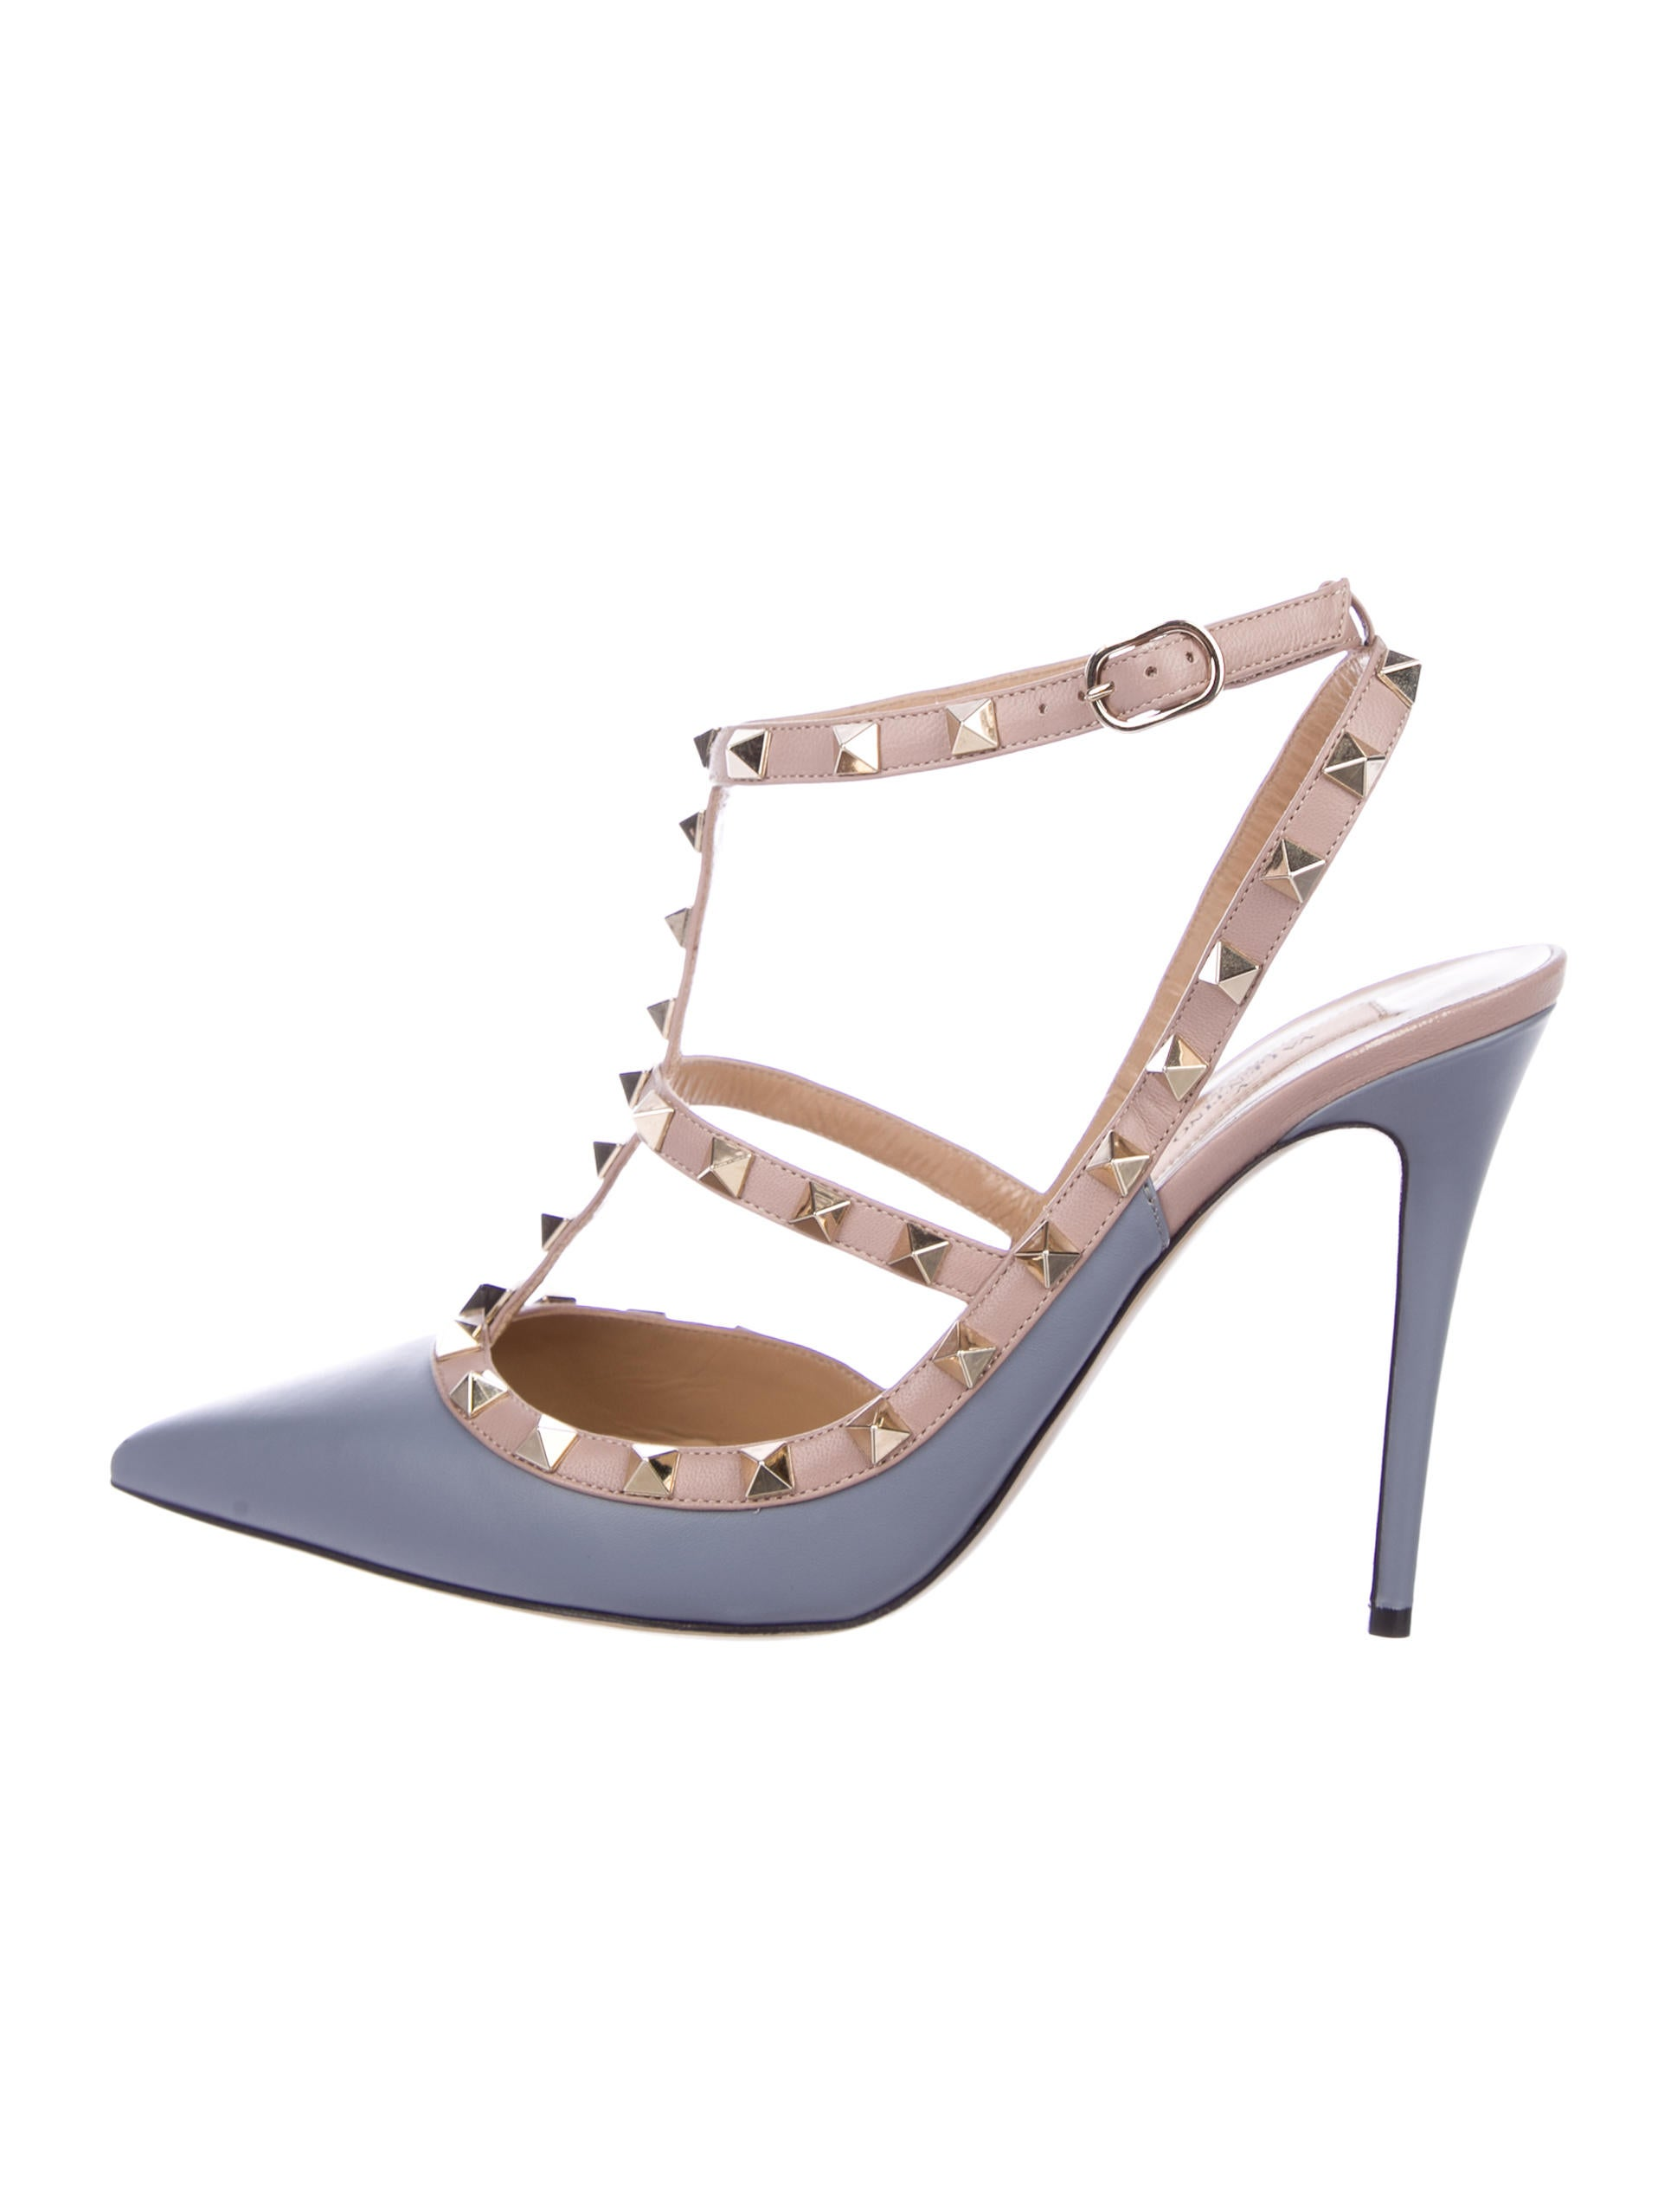 Valentino Rockstud Leather Pumps w/ Tags clearance marketable ebay cheap online buy cheap footlocker finishline outlet locations for sale ICHfKyp26W